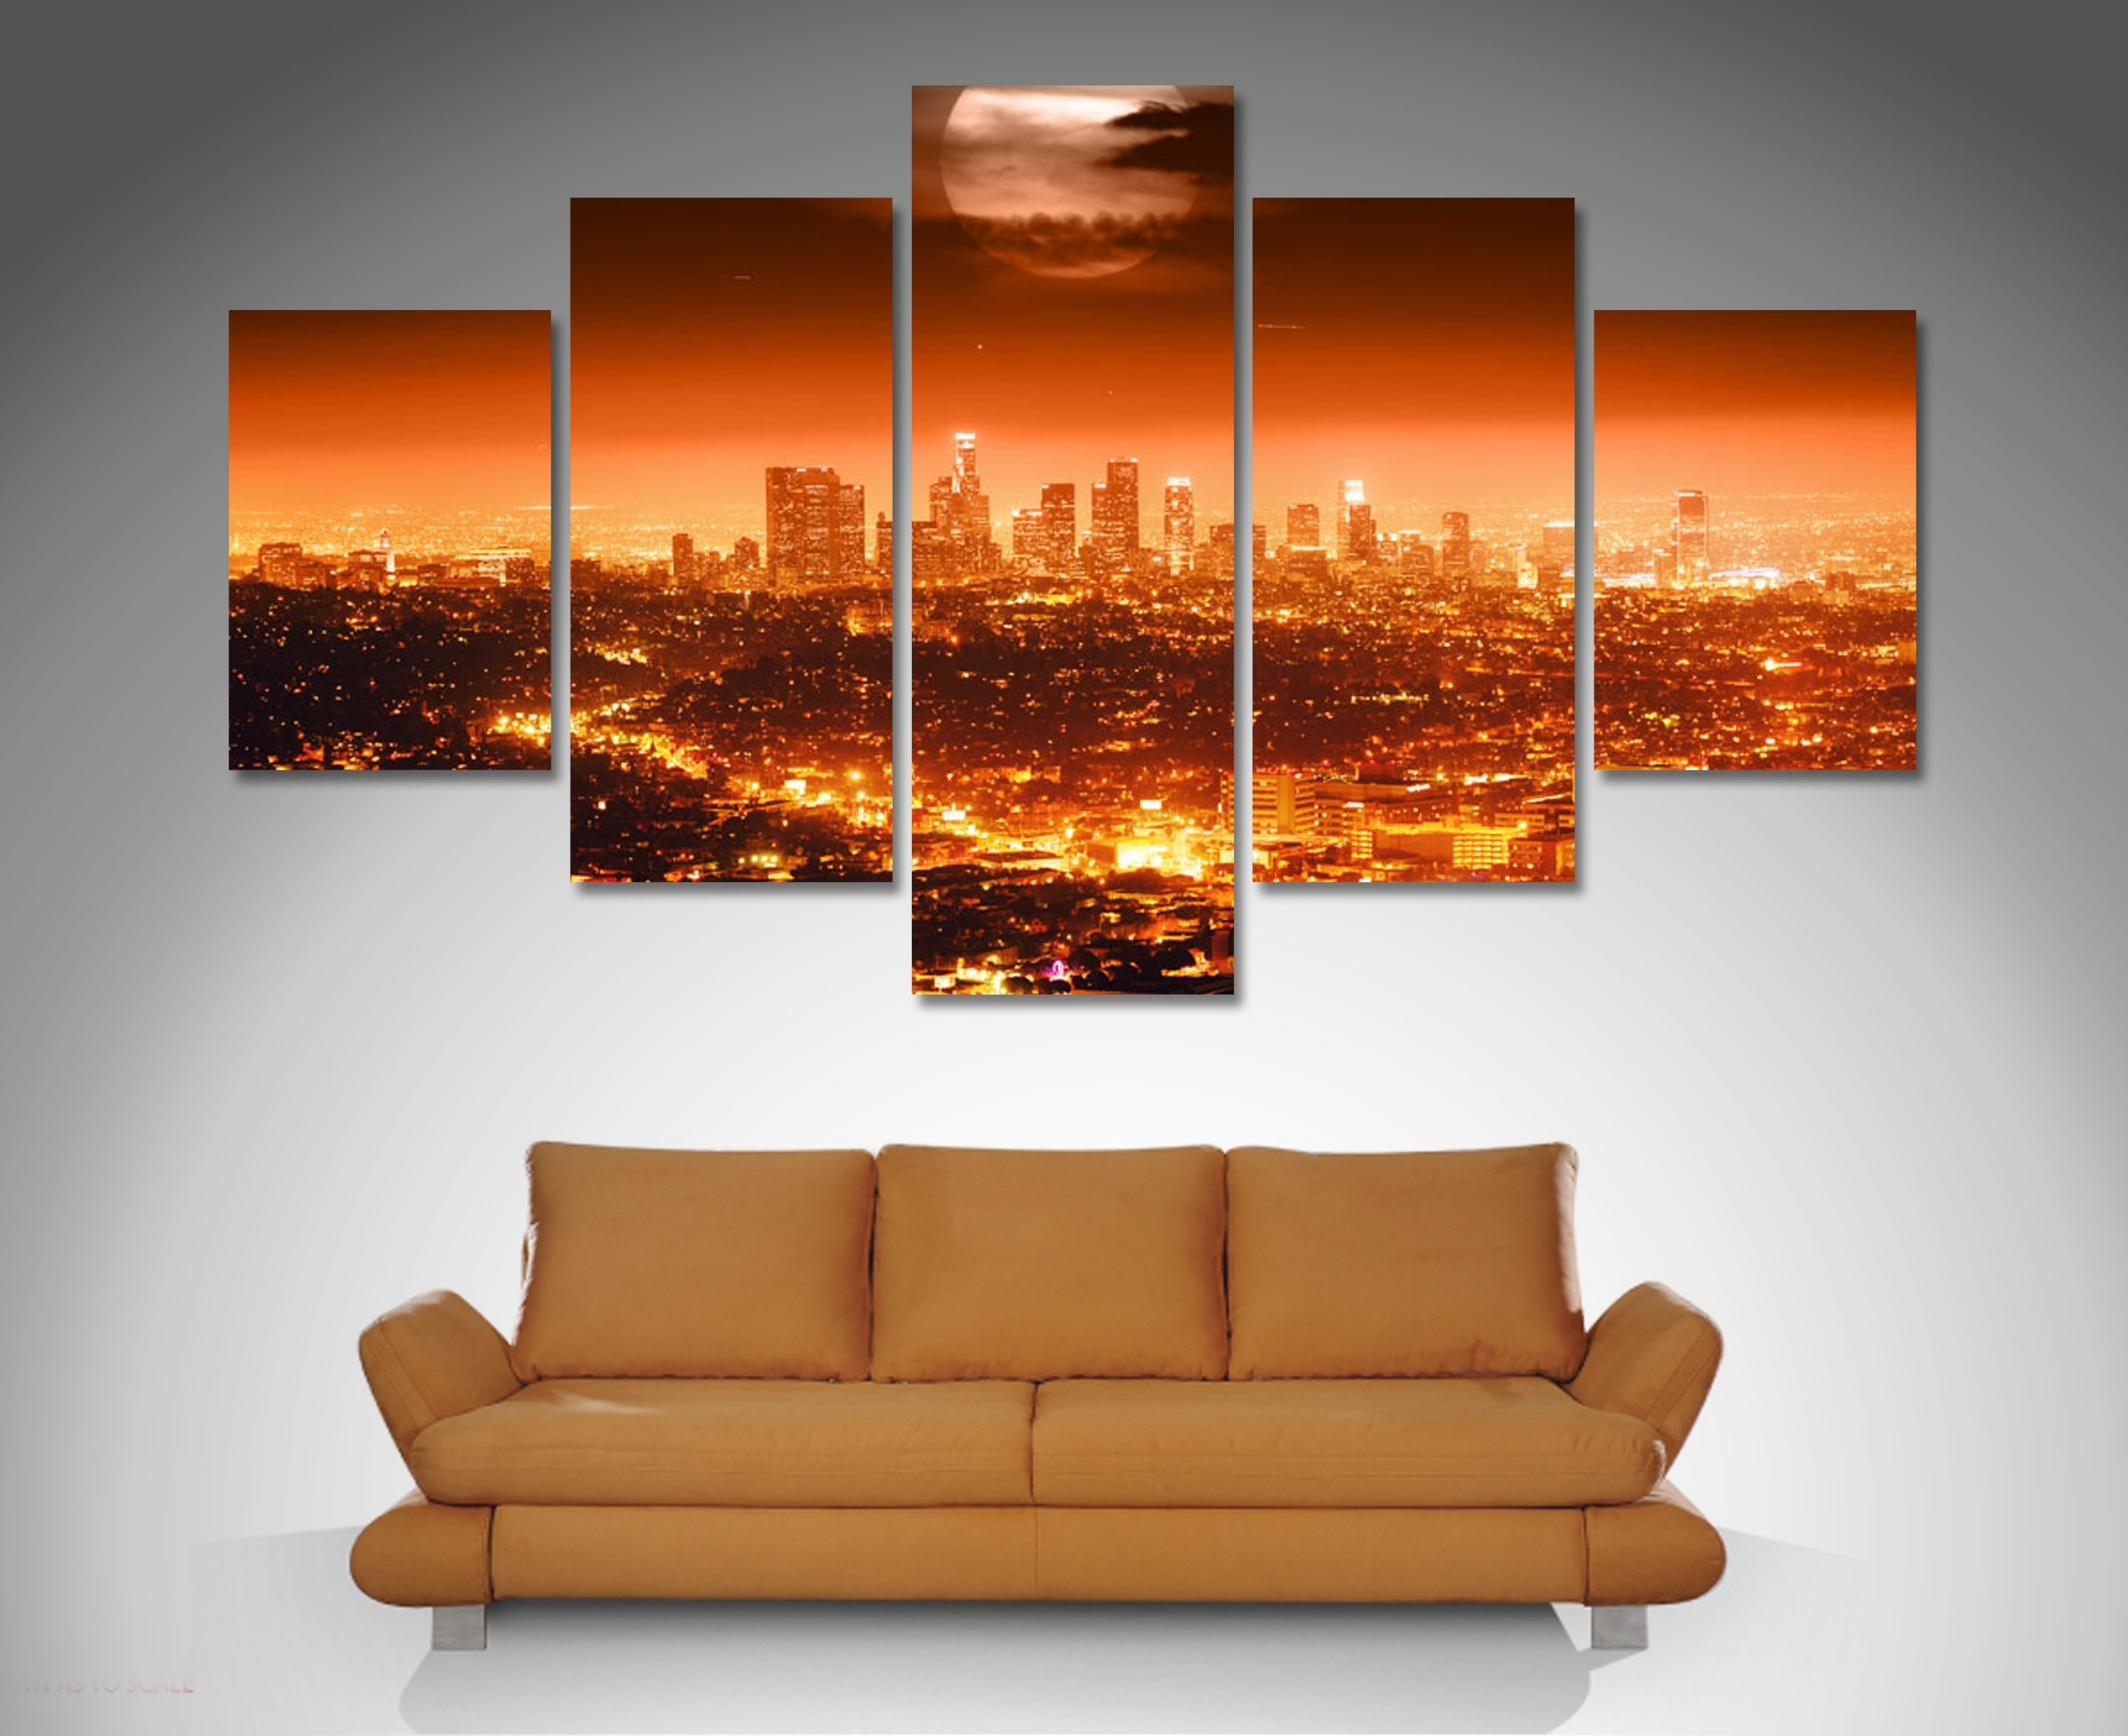 Los Angeles 5 Panel Wall Art Canvas Print Intended For 2018 5 Panel Wall Art (View 9 of 20)